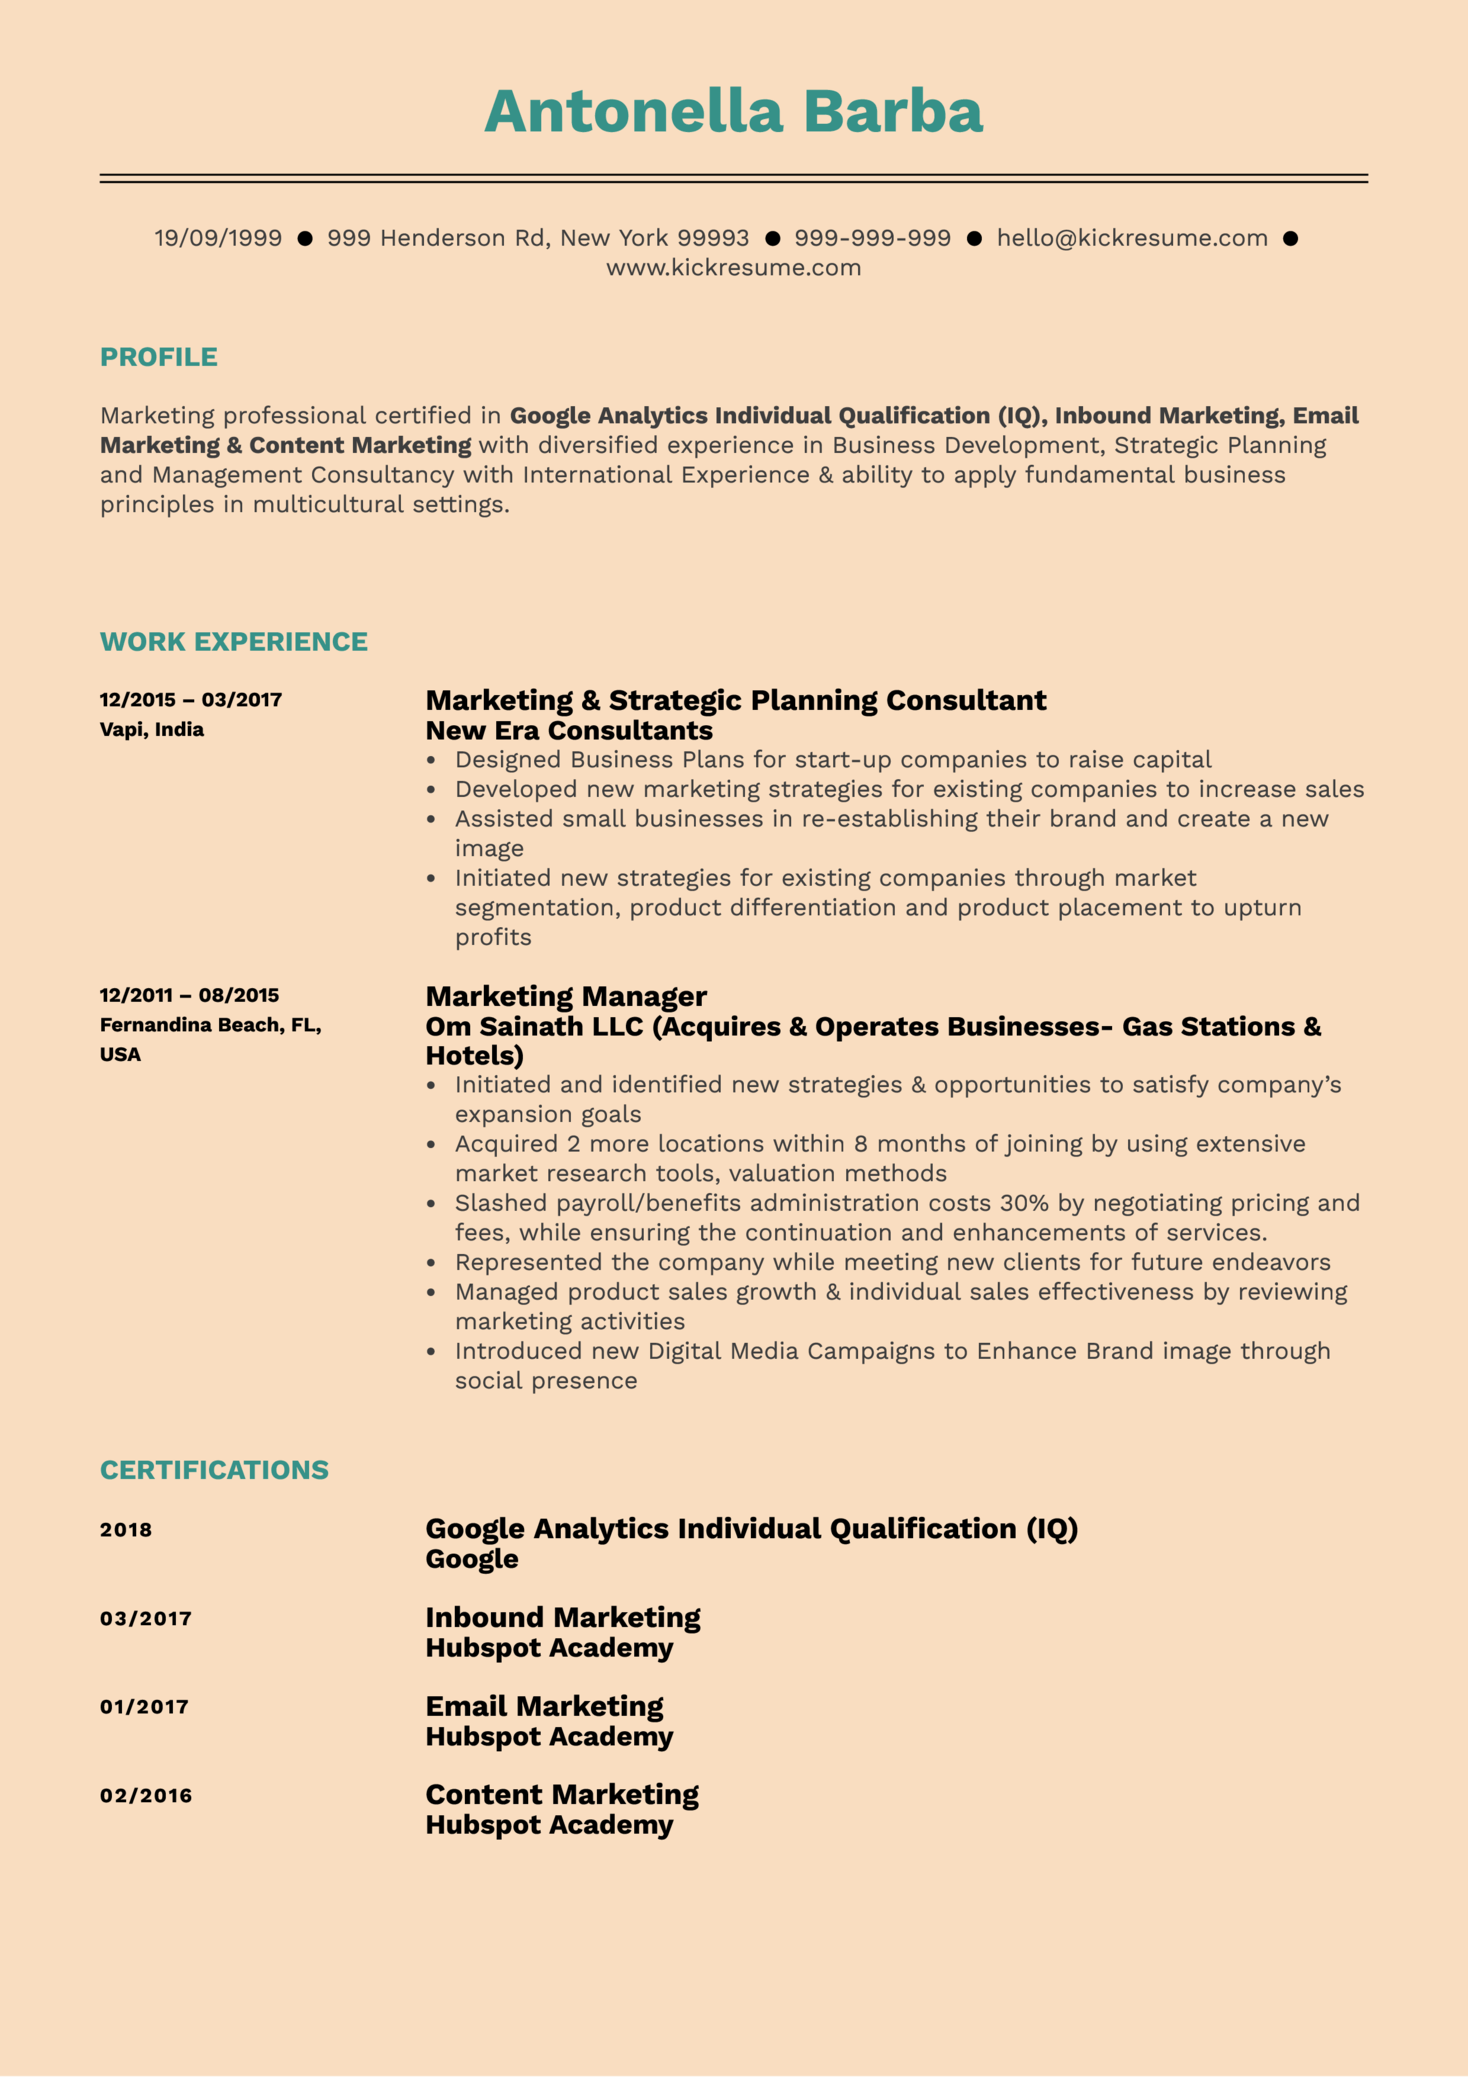 Brand Marketing Manager Resume Example (Parte 1)